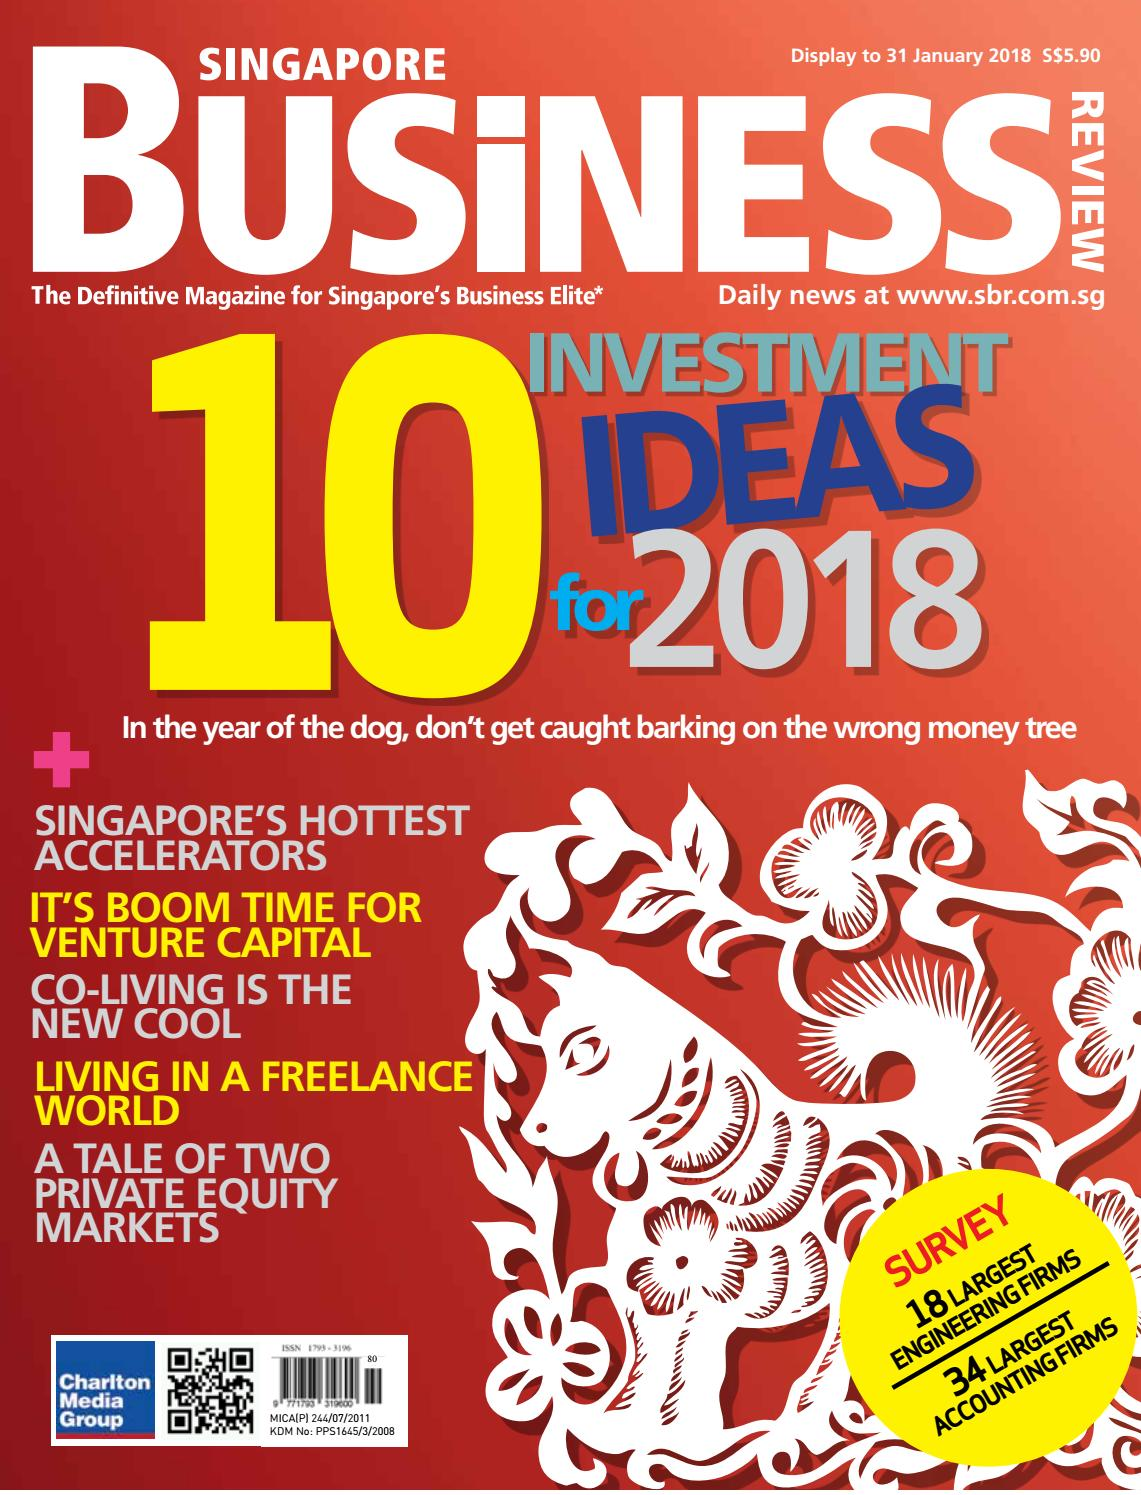 Singapore Business Review (December 2017 - January 2018) by Charlton